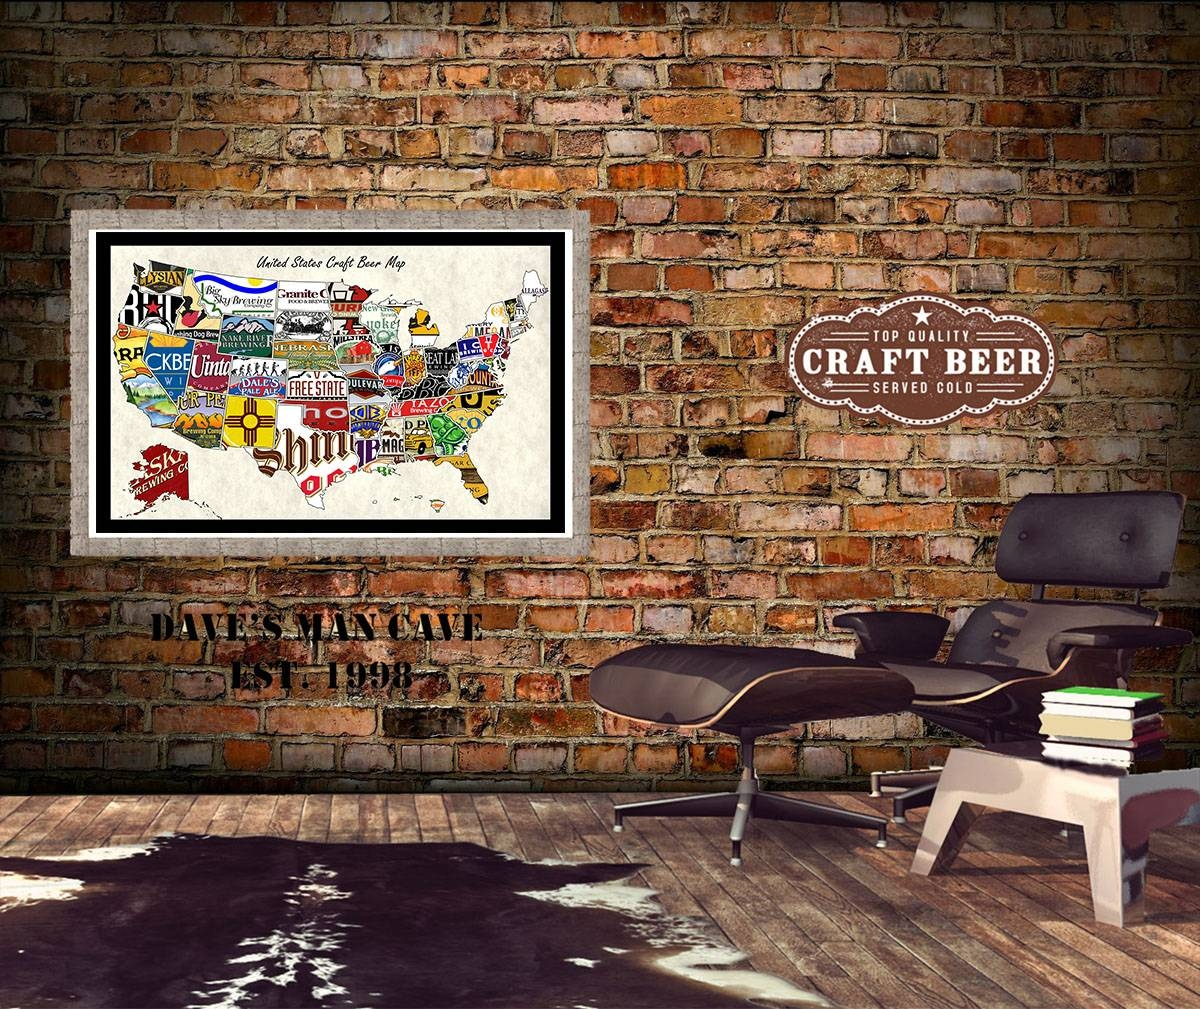 United States Craft Beer Wall Map Art Poster Of Breweries Regarding 2018 United States Map Wall Art (View 10 of 20)